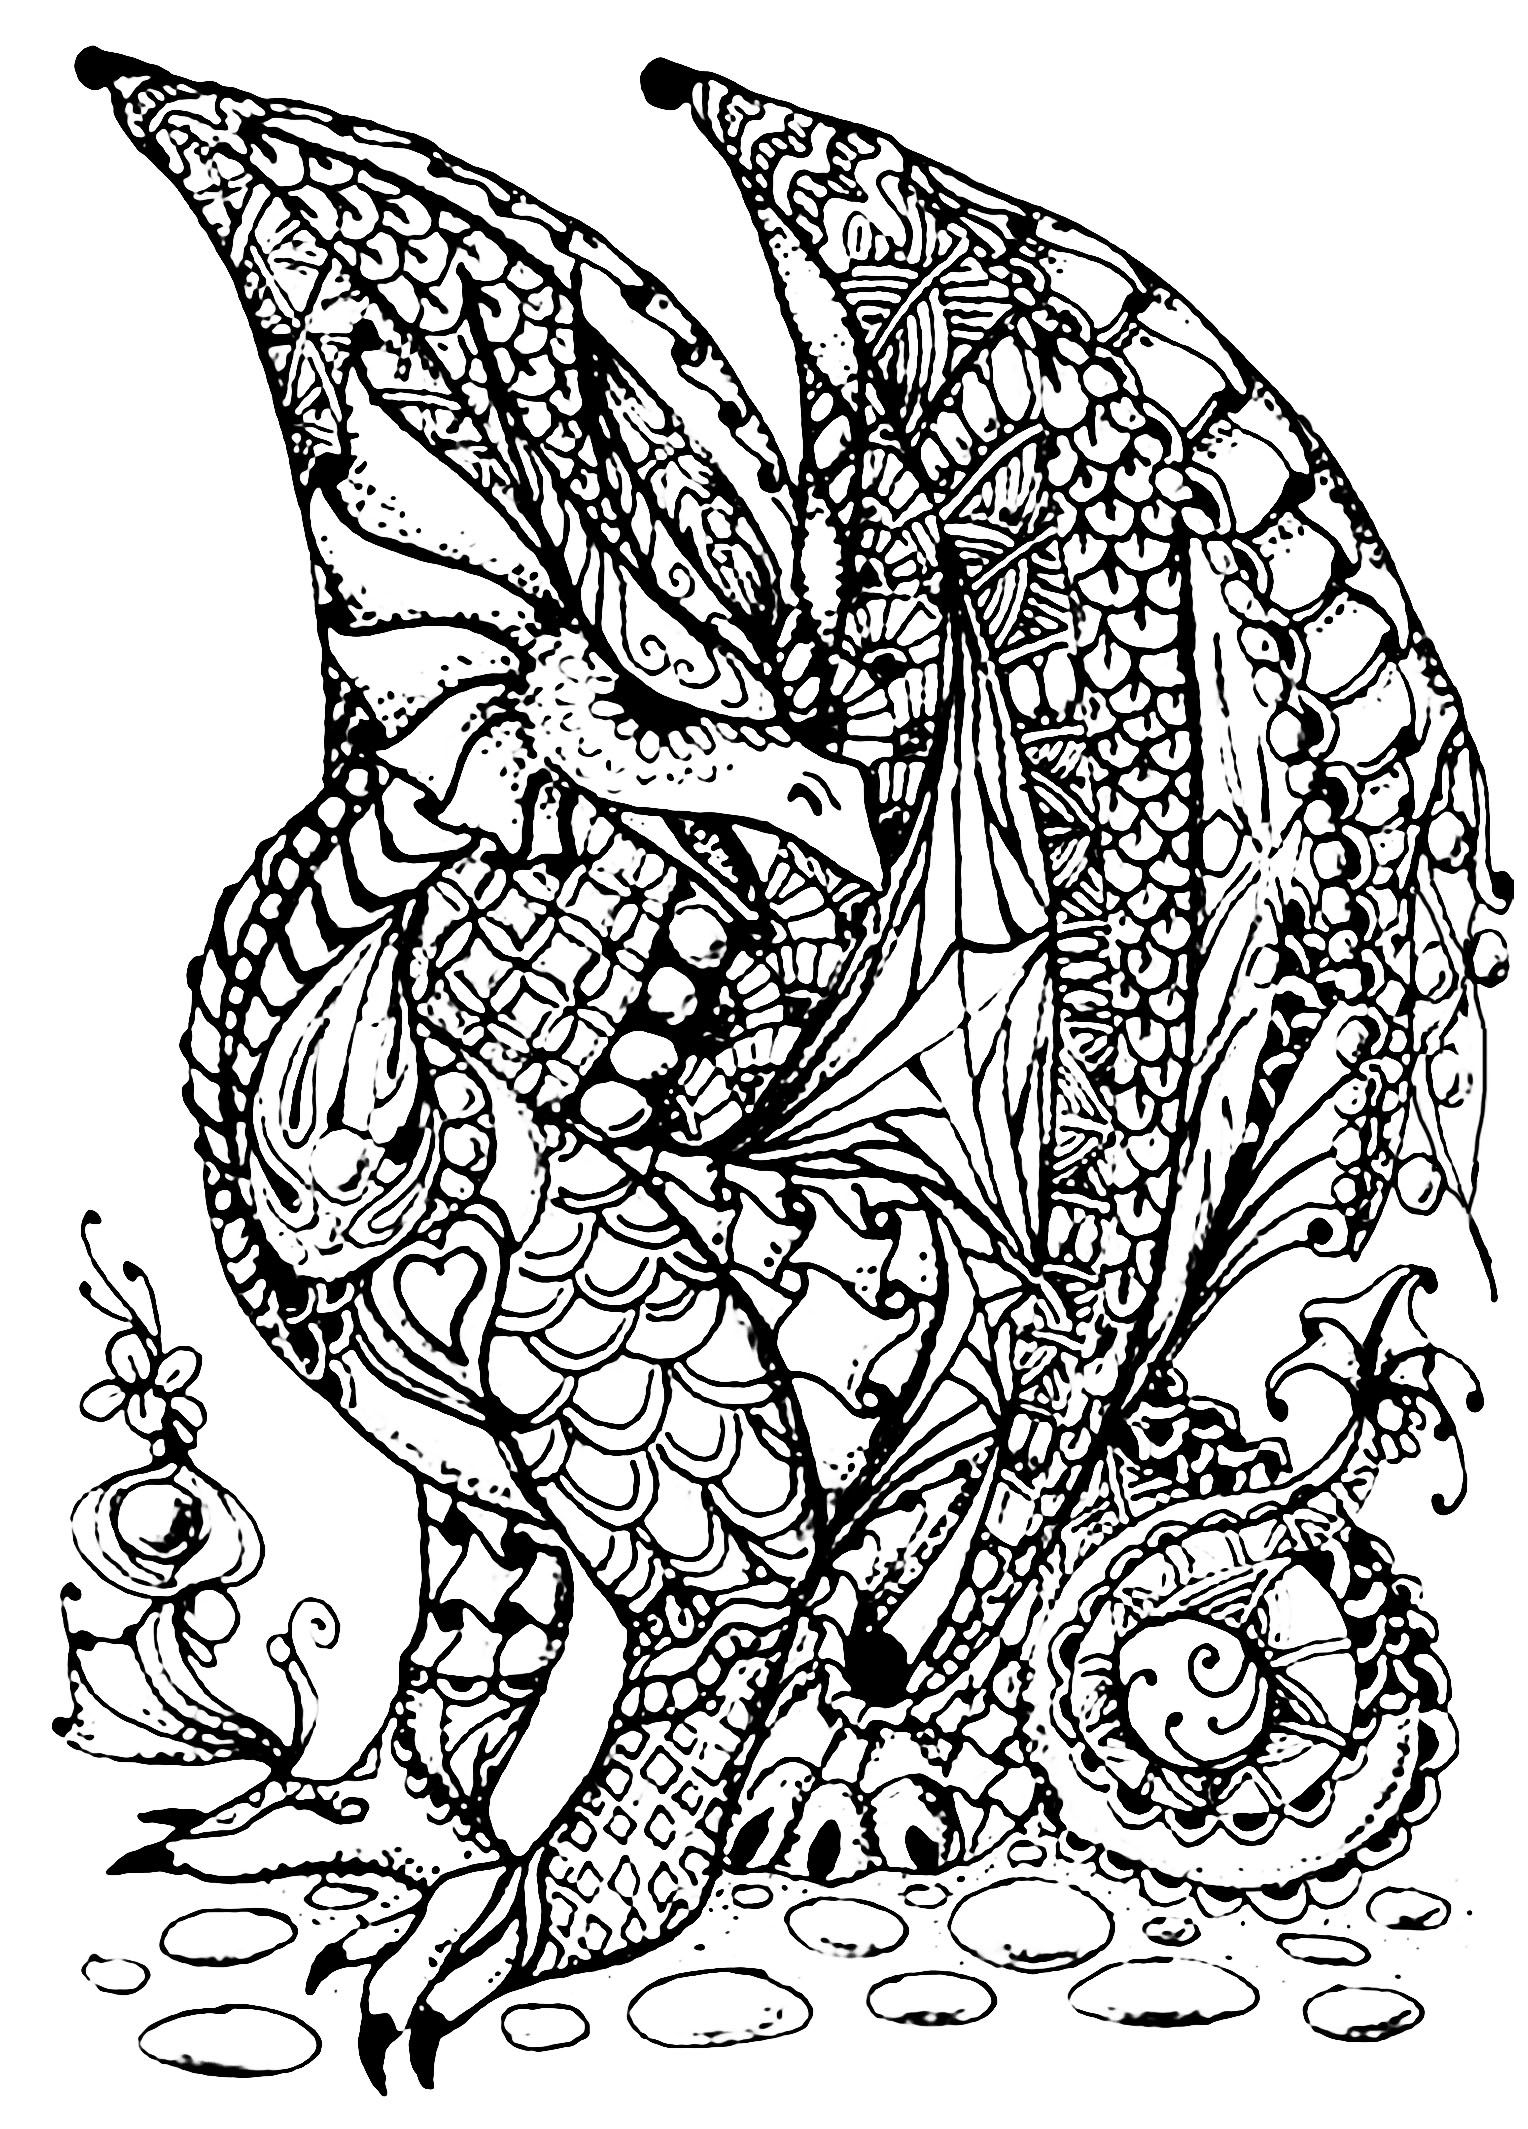 Awesome Dragon Mandala Coloring Pages Gallery Printable Coloring